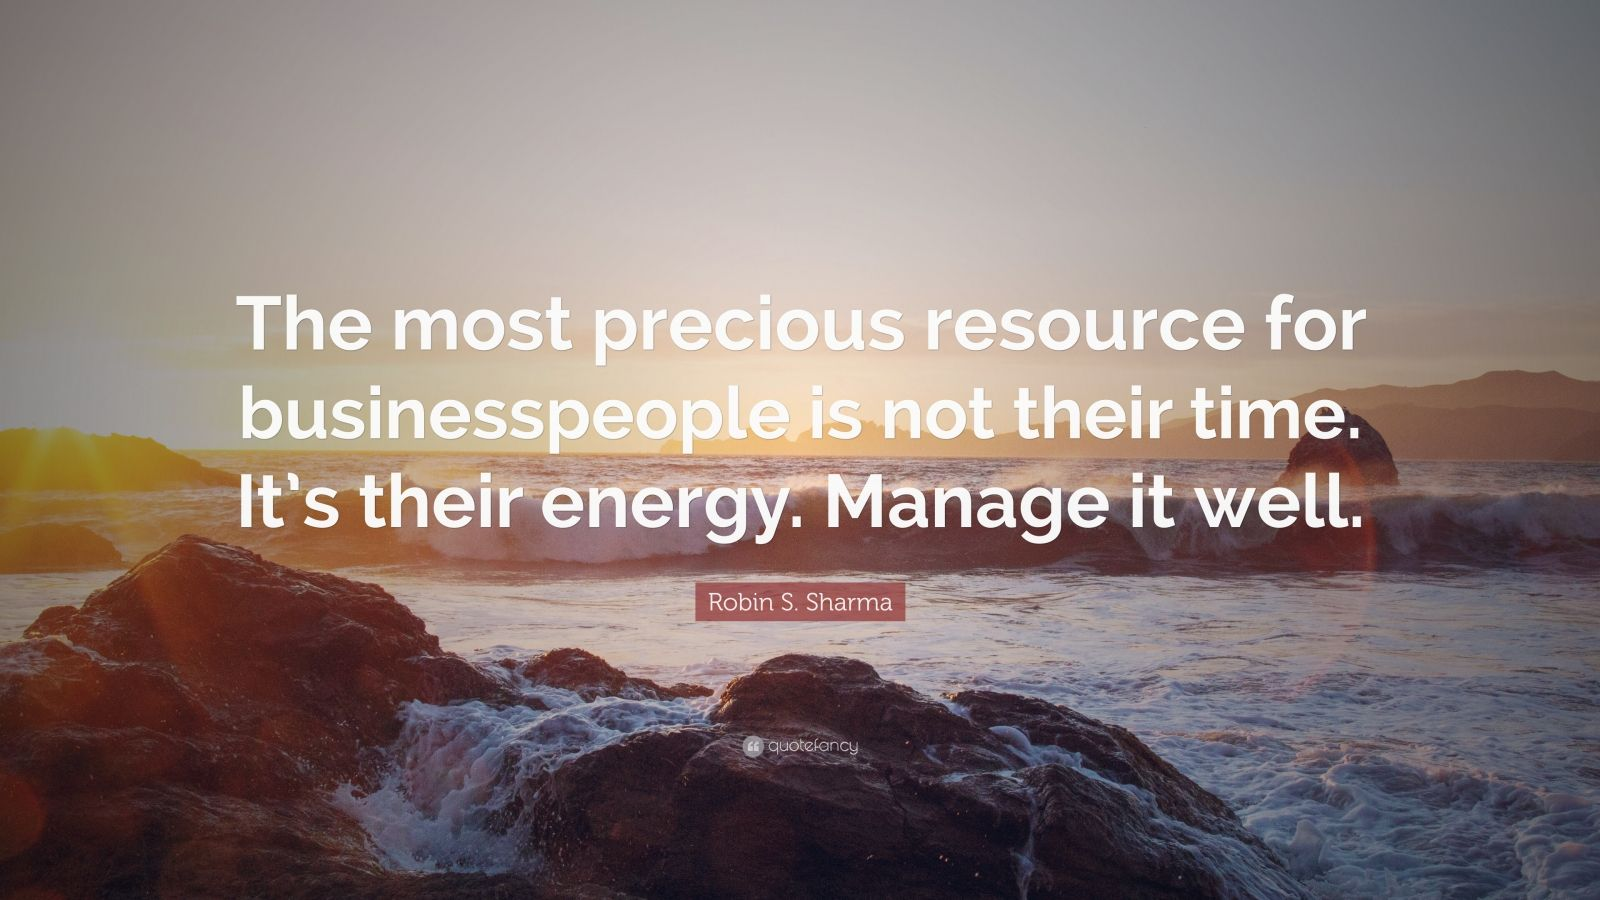 """Robin S. Sharma Quote: """"The most precious resource for businesspeople is not their time. It's their energy. Manage it well."""""""